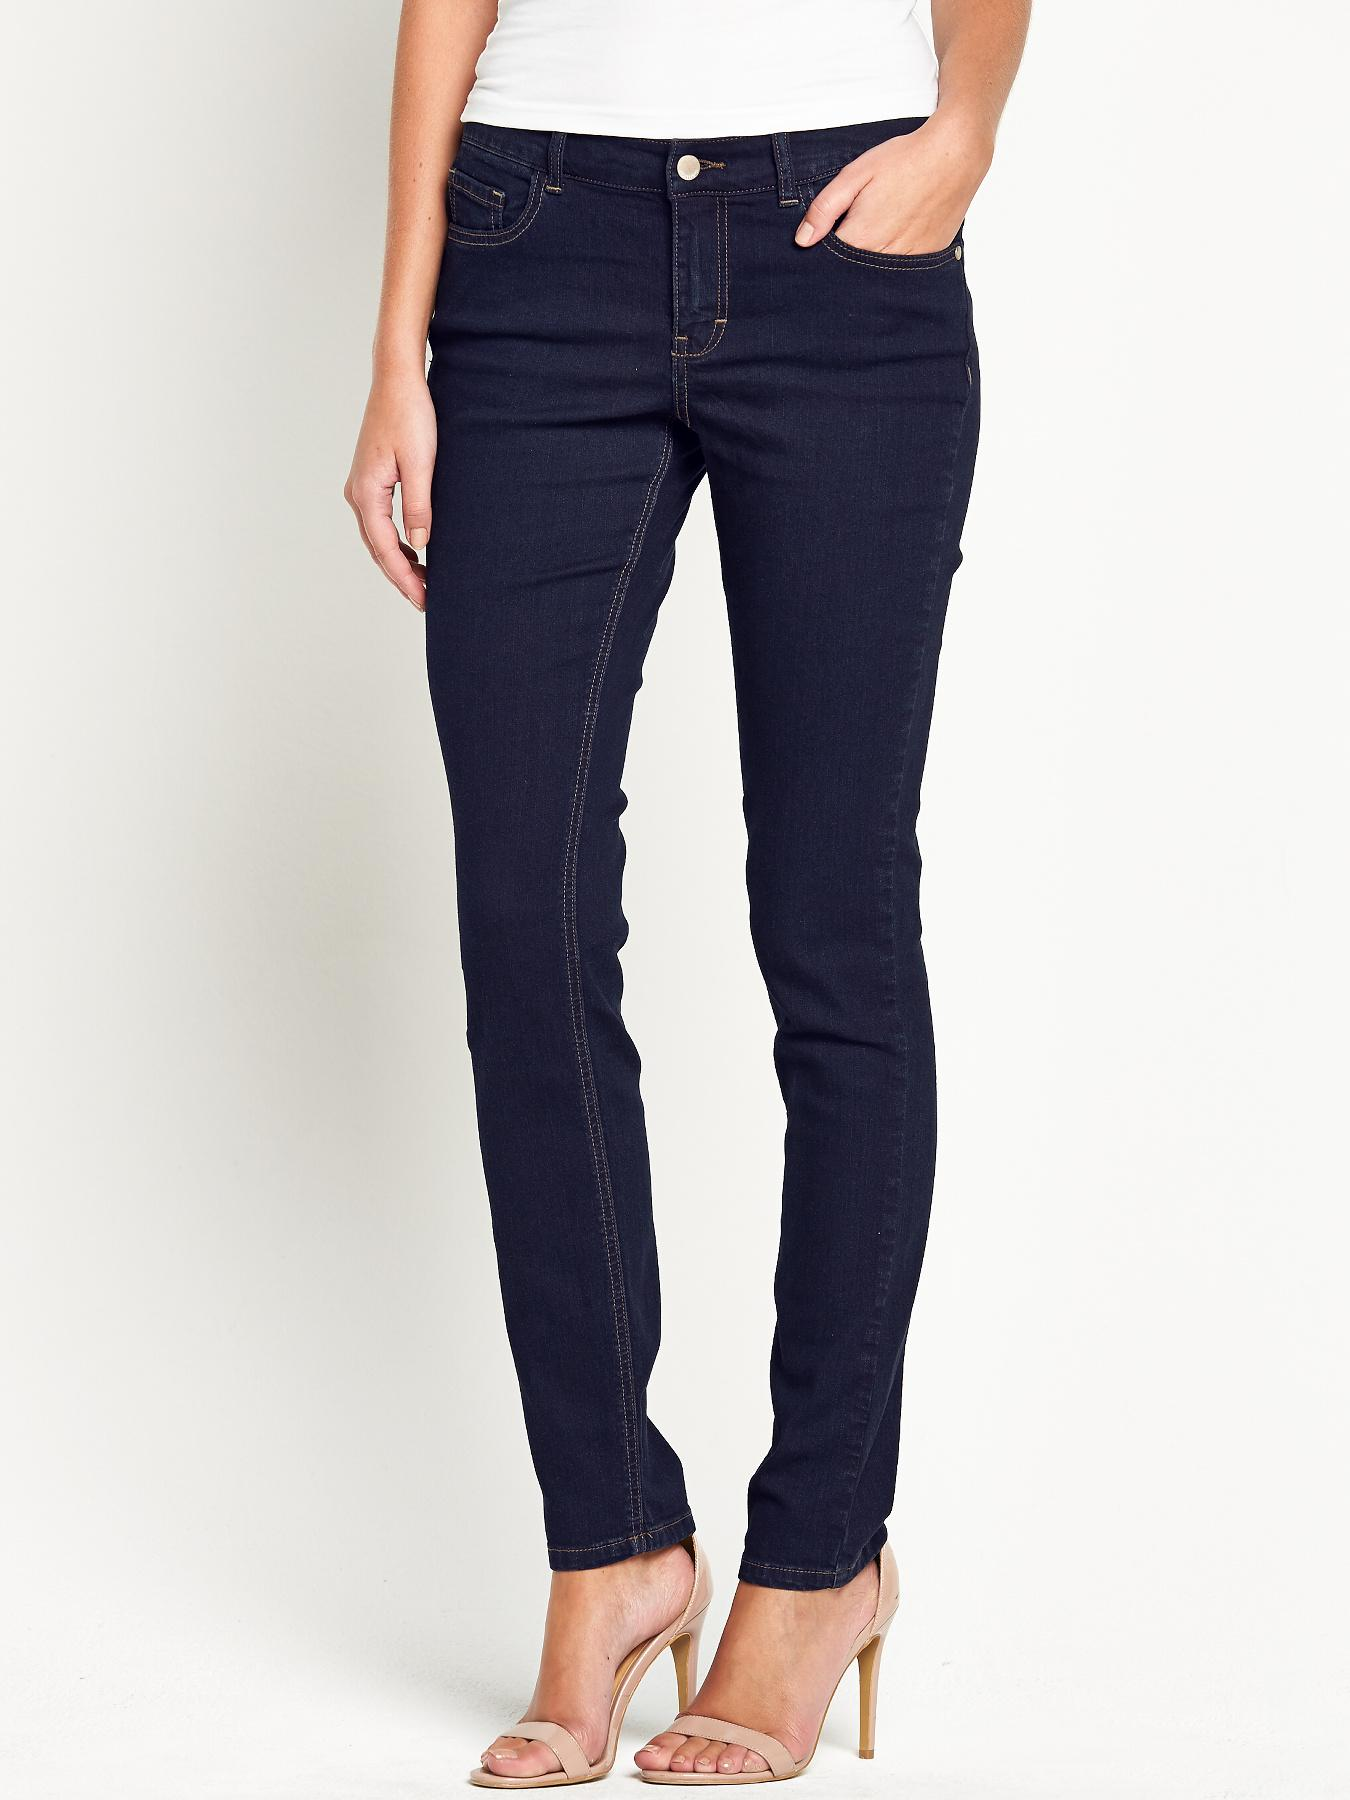 South Tall 1932 Skinny Jeans - Black, Black,Indigo,Blue